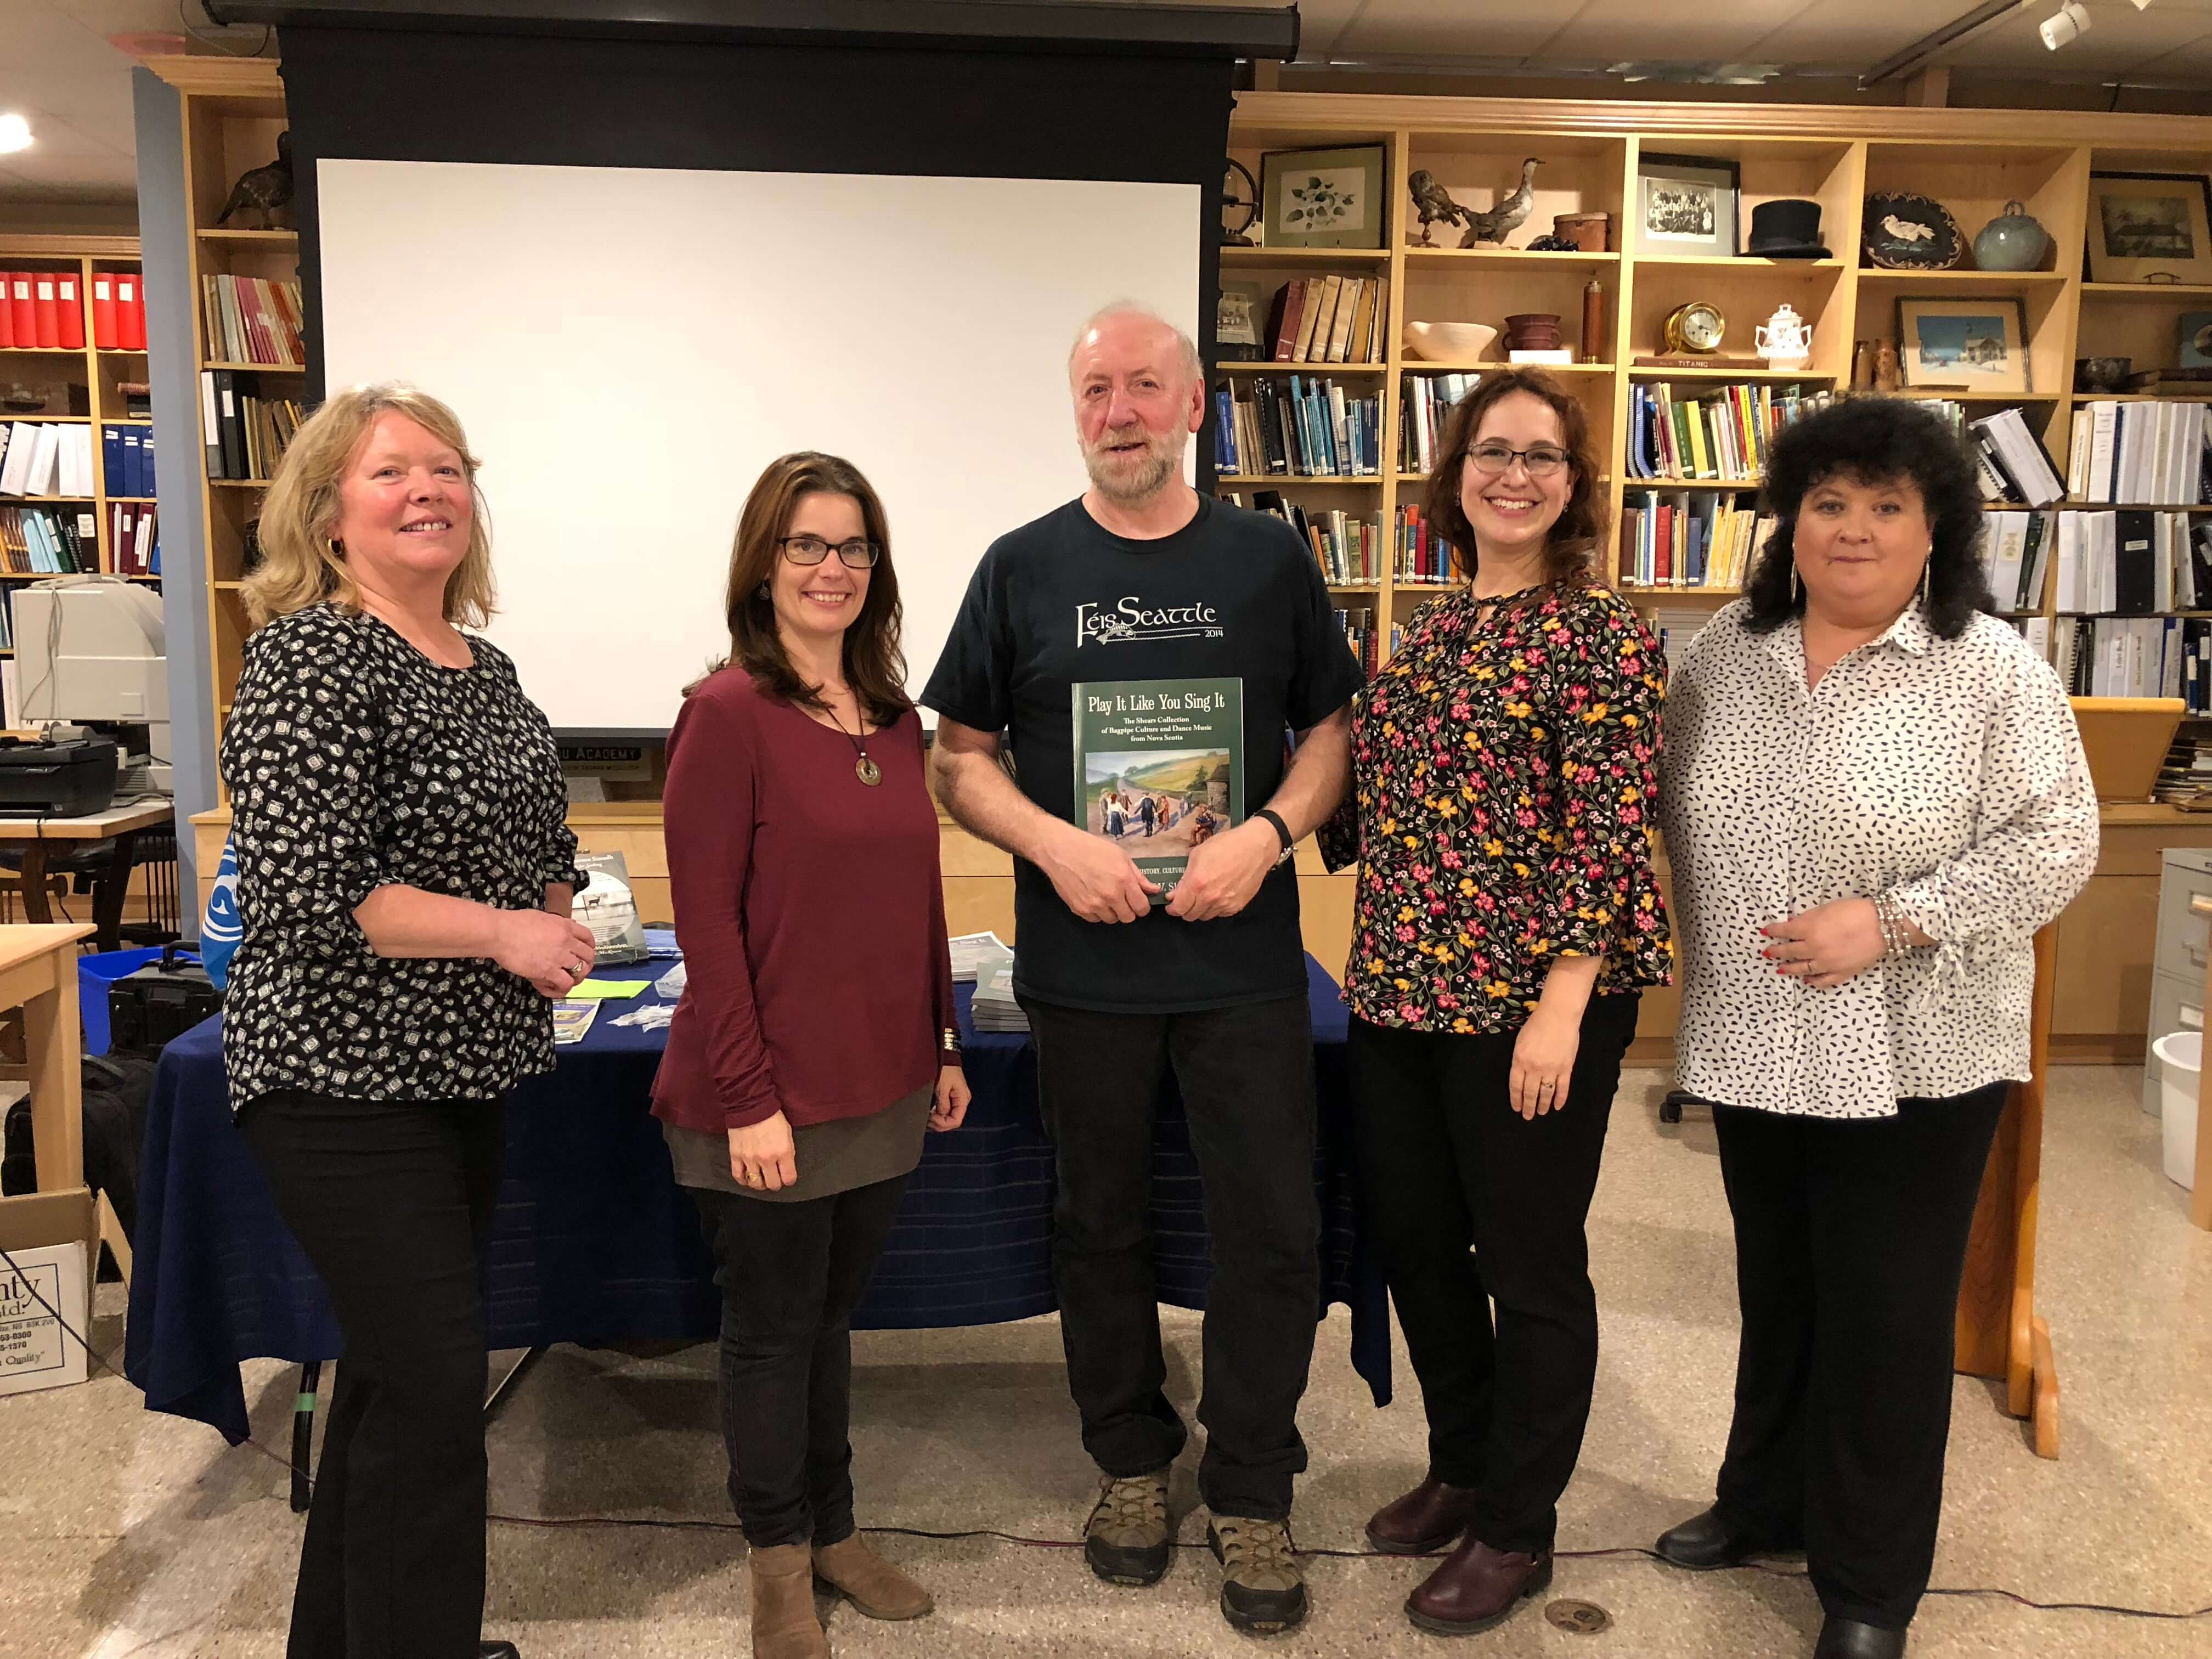 Book launch performers and organizers at McCulloch House Heritage Centre in Pictou, NS. L to R: pianist Lorna Kennedy, fiddler Heather Cameron, Barry Shears, Emily McEwan, and Cathy Ann MacPhee